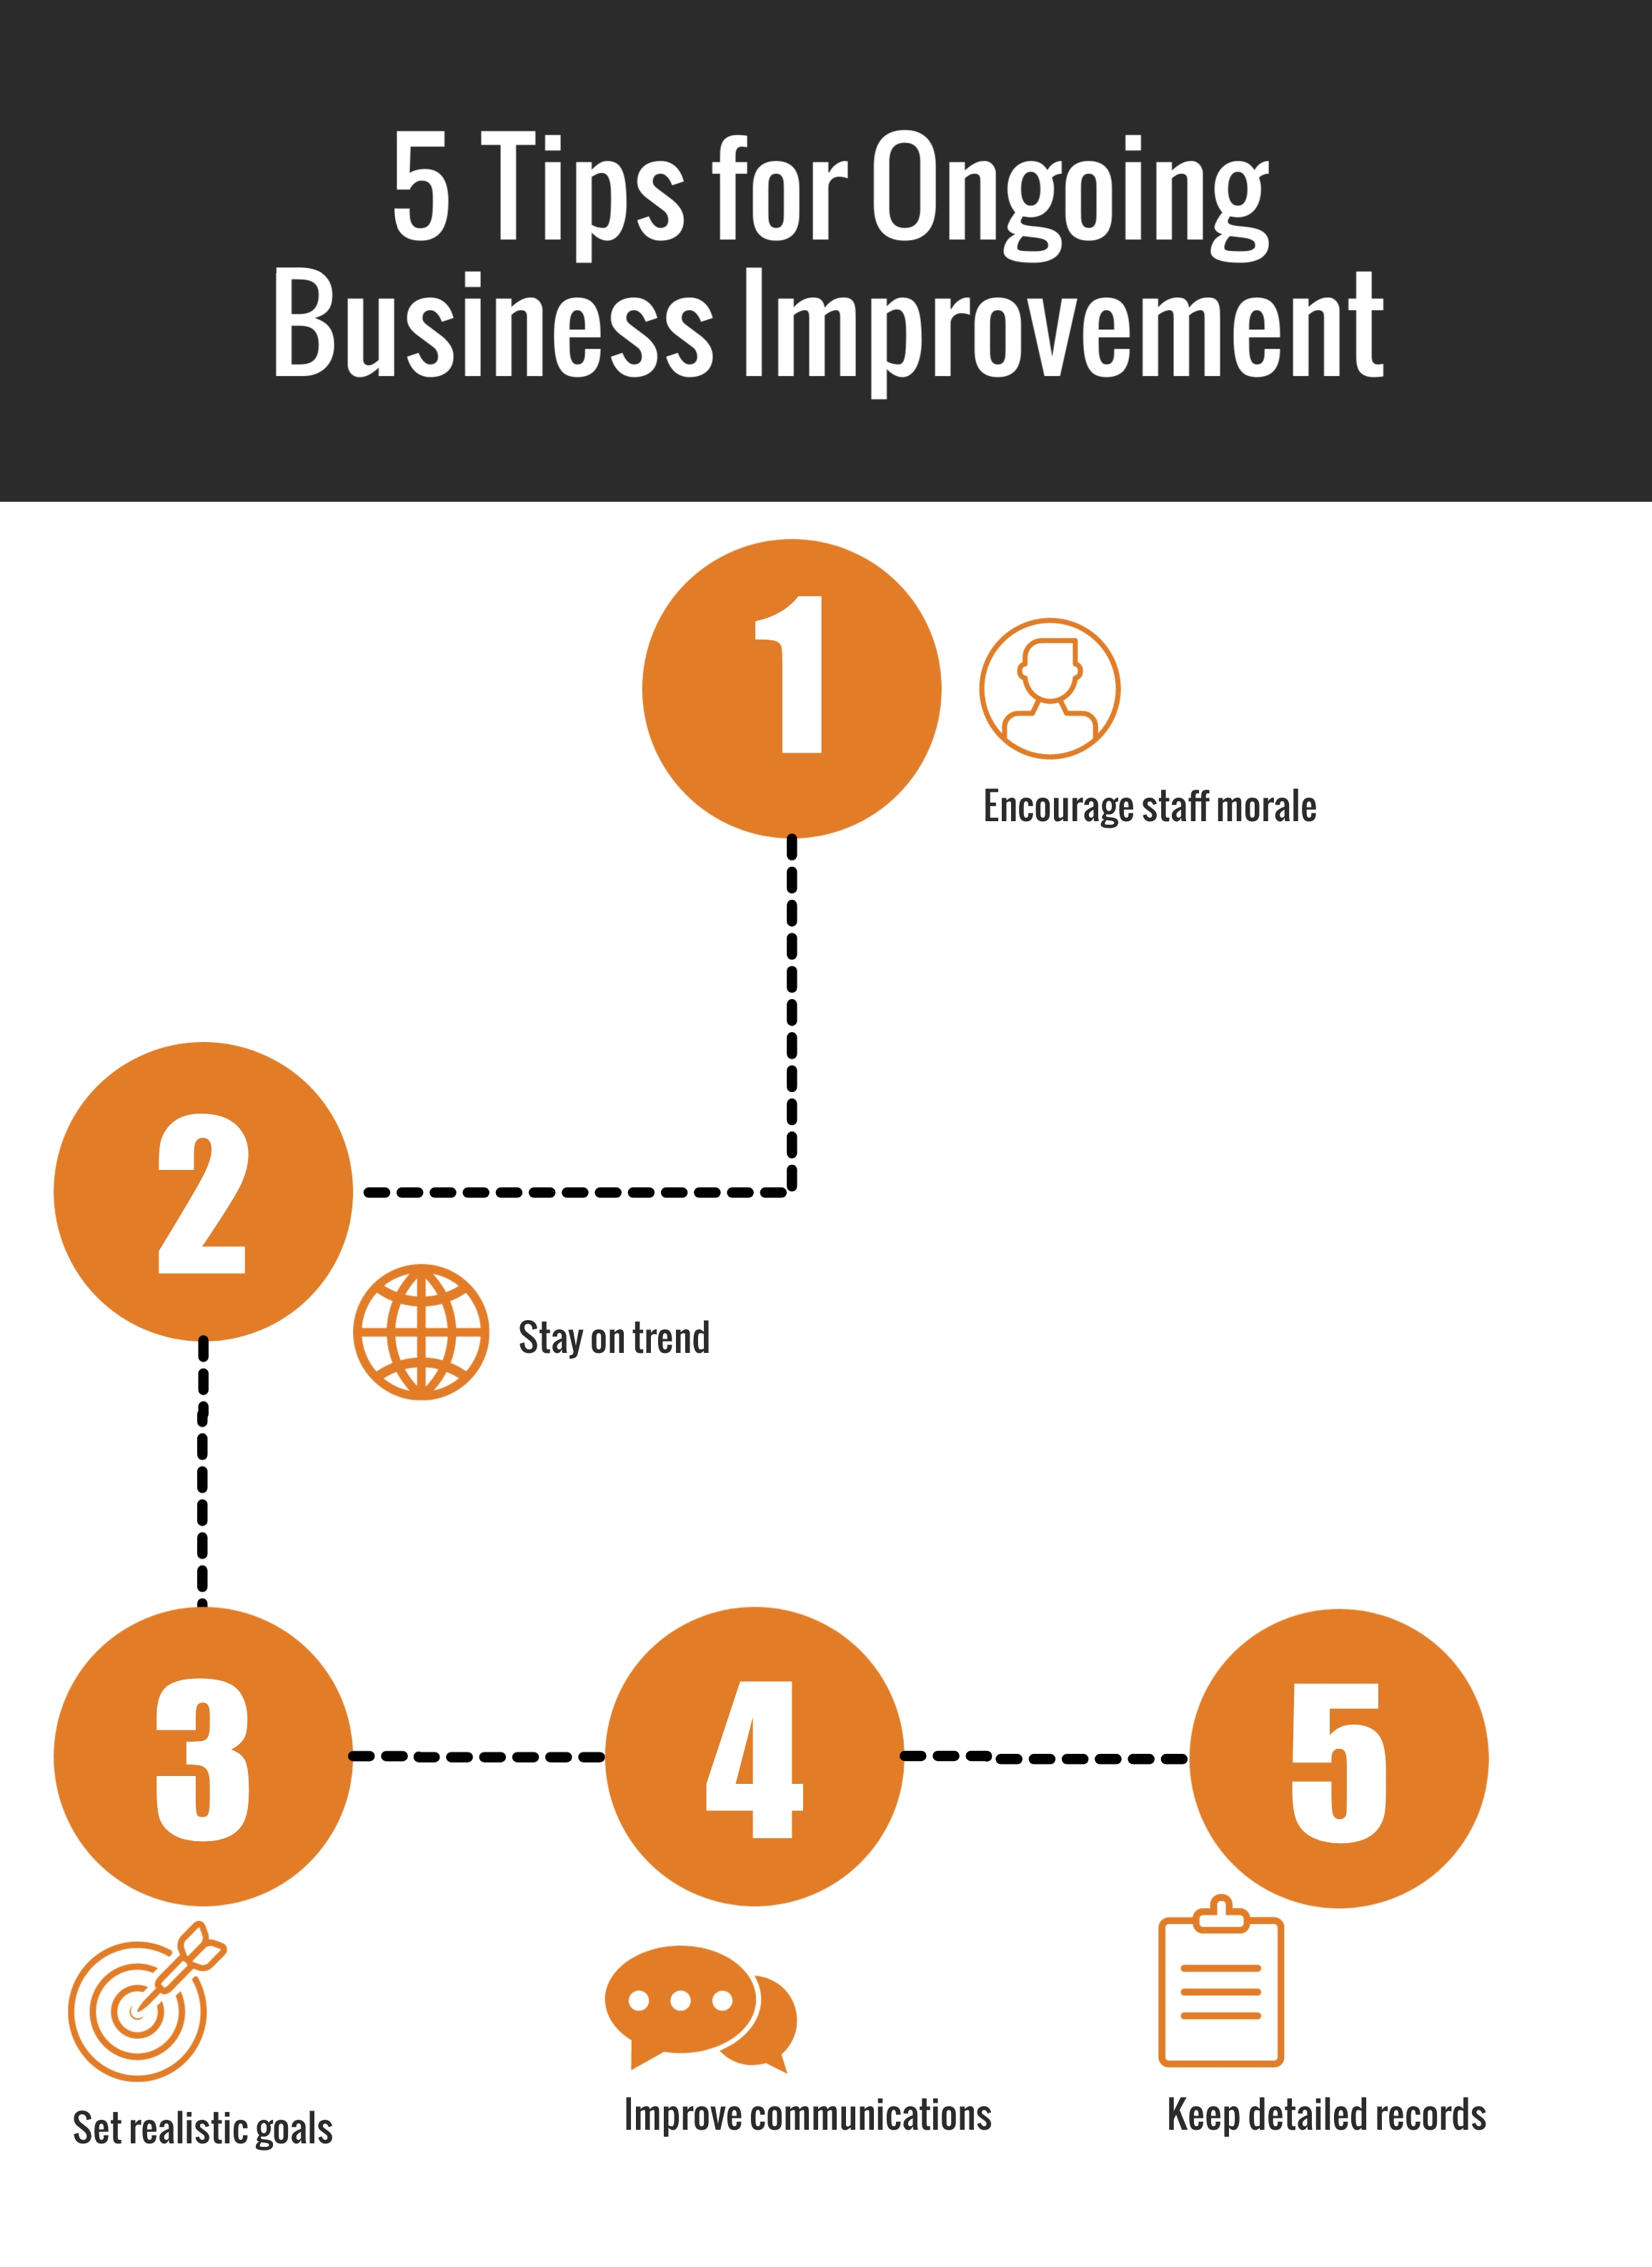 5 Tips for Ongoing Business Improvement, Enstep Technology Solutions, Houston